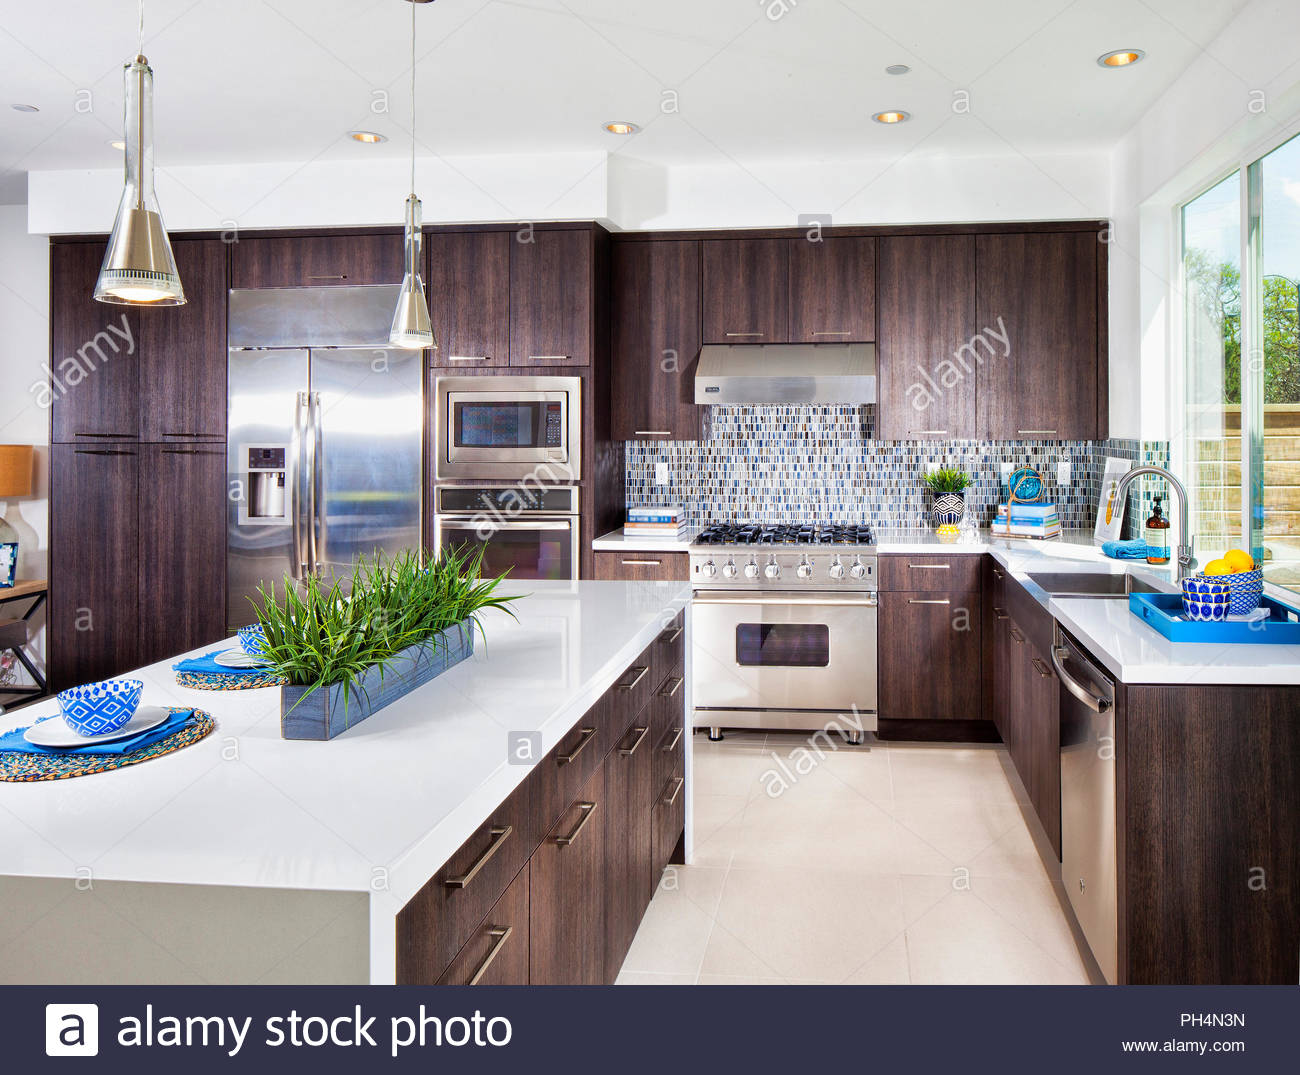 Brown and white kitchen - Stock Image